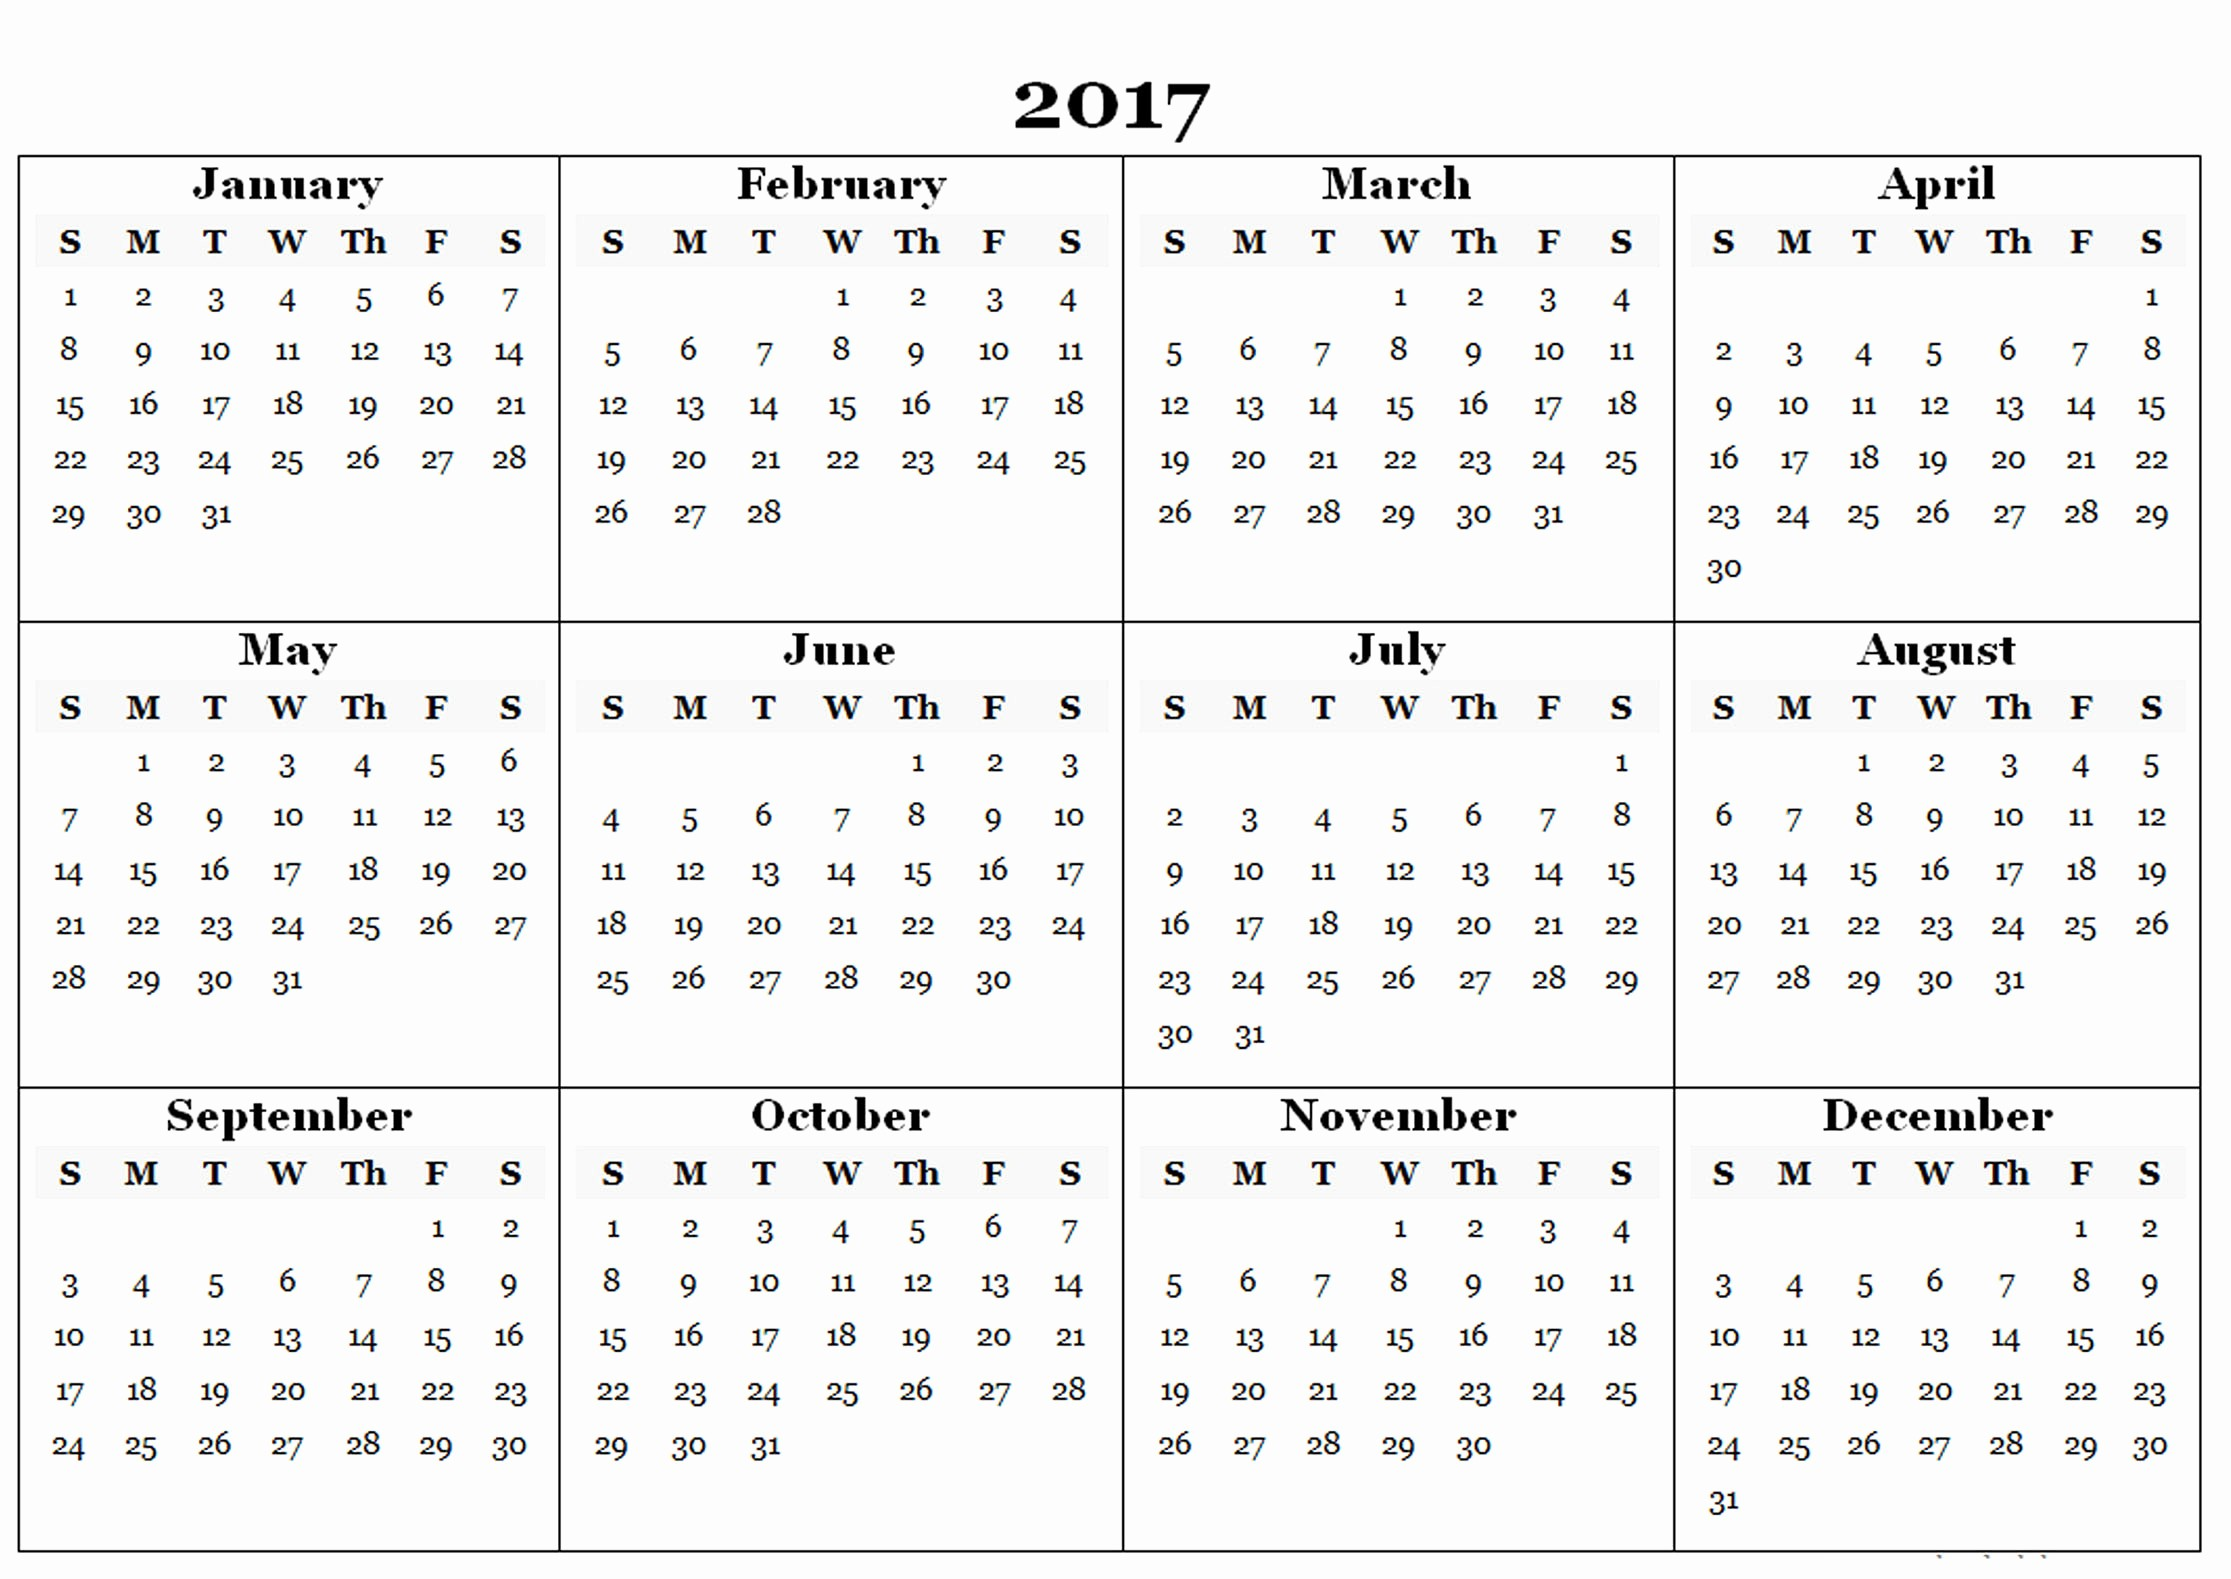 Calendar 2017 Monday to Sunday Awesome 2017 Calendar Templates and Printable 2017calendar